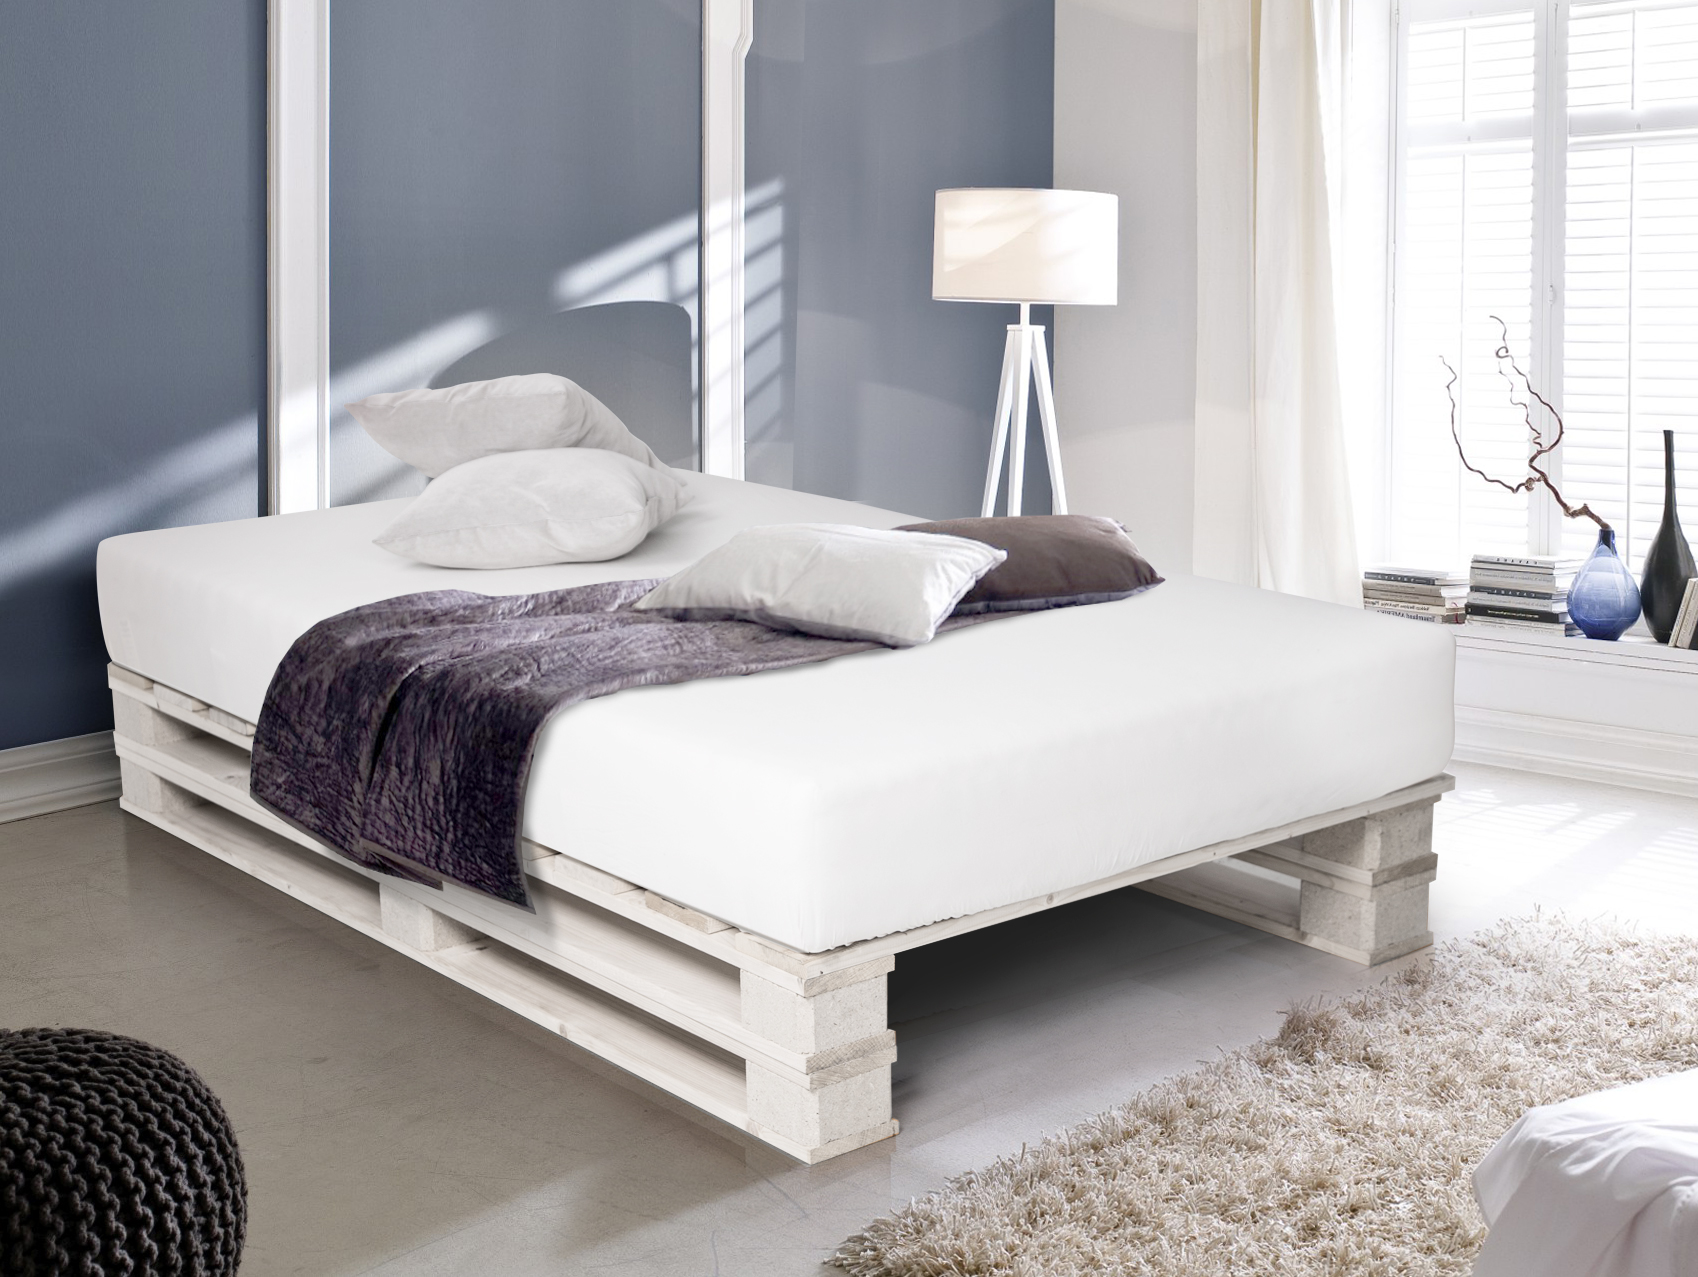 Bett 120x200 Oder 140x200 Bett 120x200 Cheap Futonbett With Bett 120x200 Gallery Of Bett